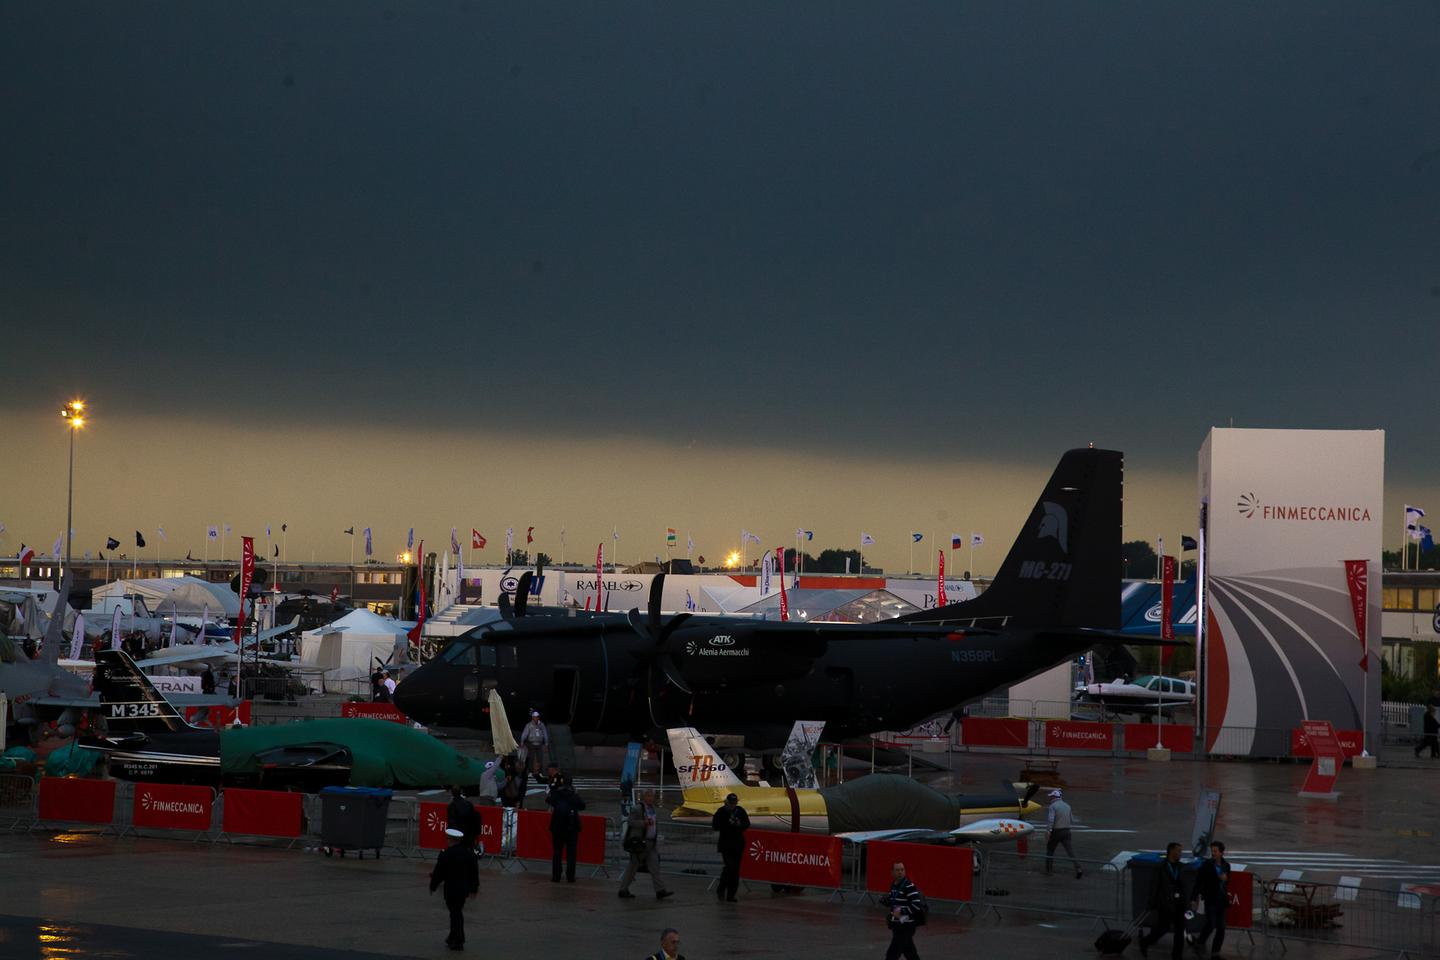 Things looked grim at 11 am on the opening day of the 2013 Paris Air Show, but thankfully the sunshine reappeared (Photo: Noel McKeegan/Gizmag)